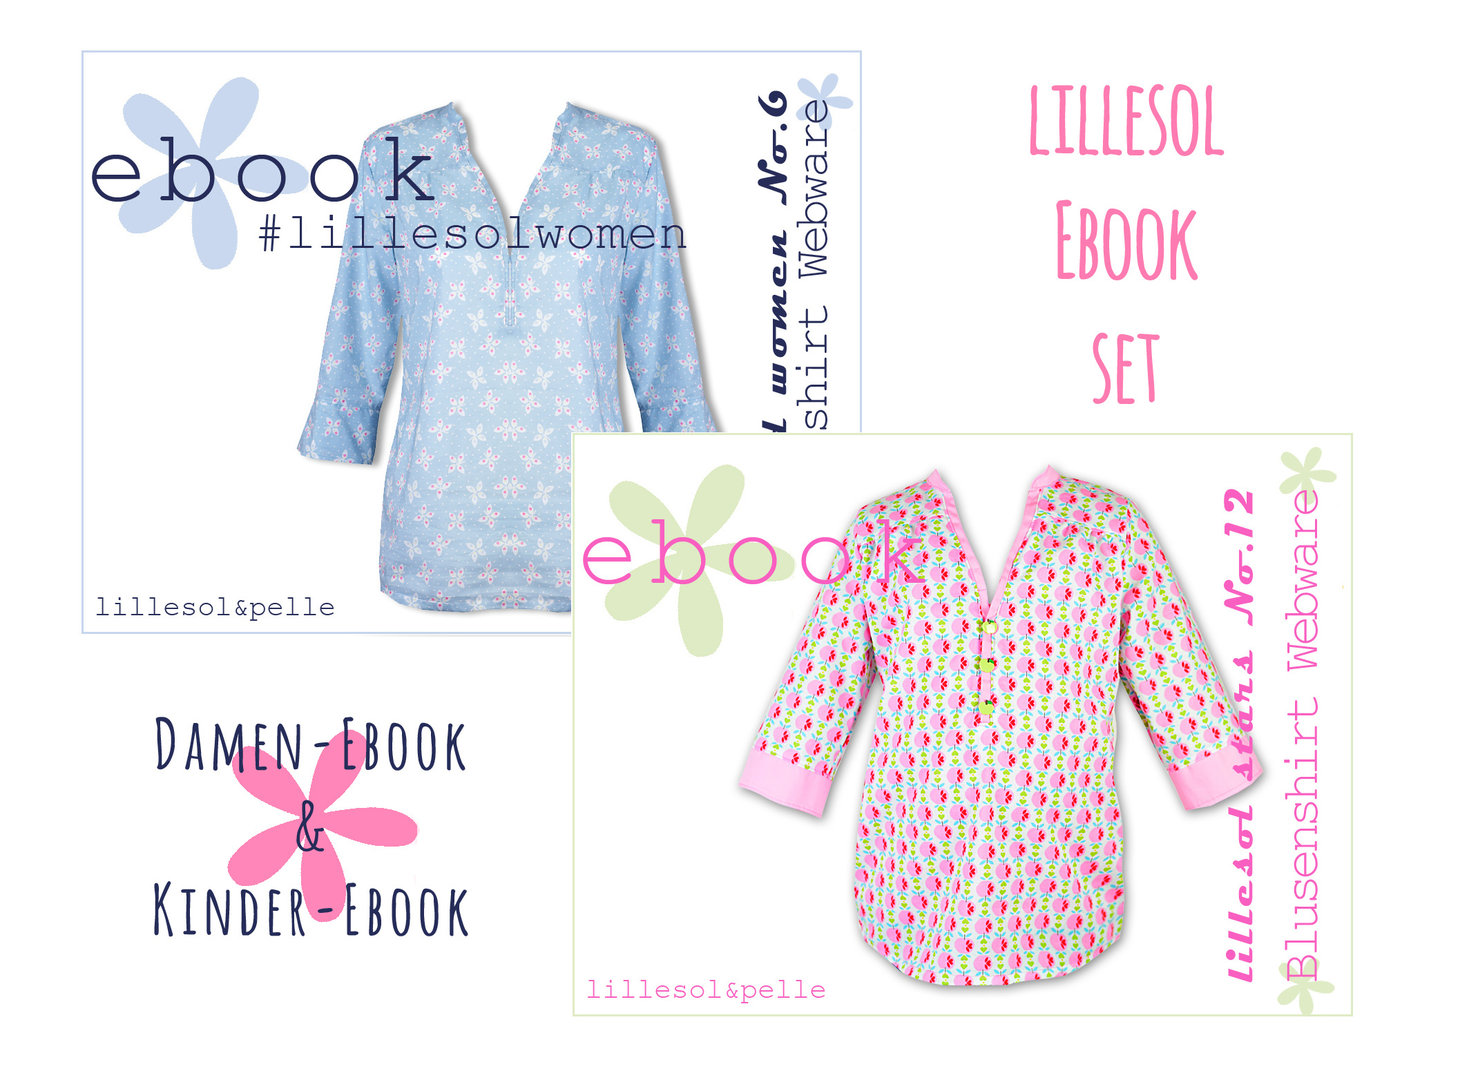 lillesol ebook set stars No.12 und women No.6 *mit Video-Nähanleitung*